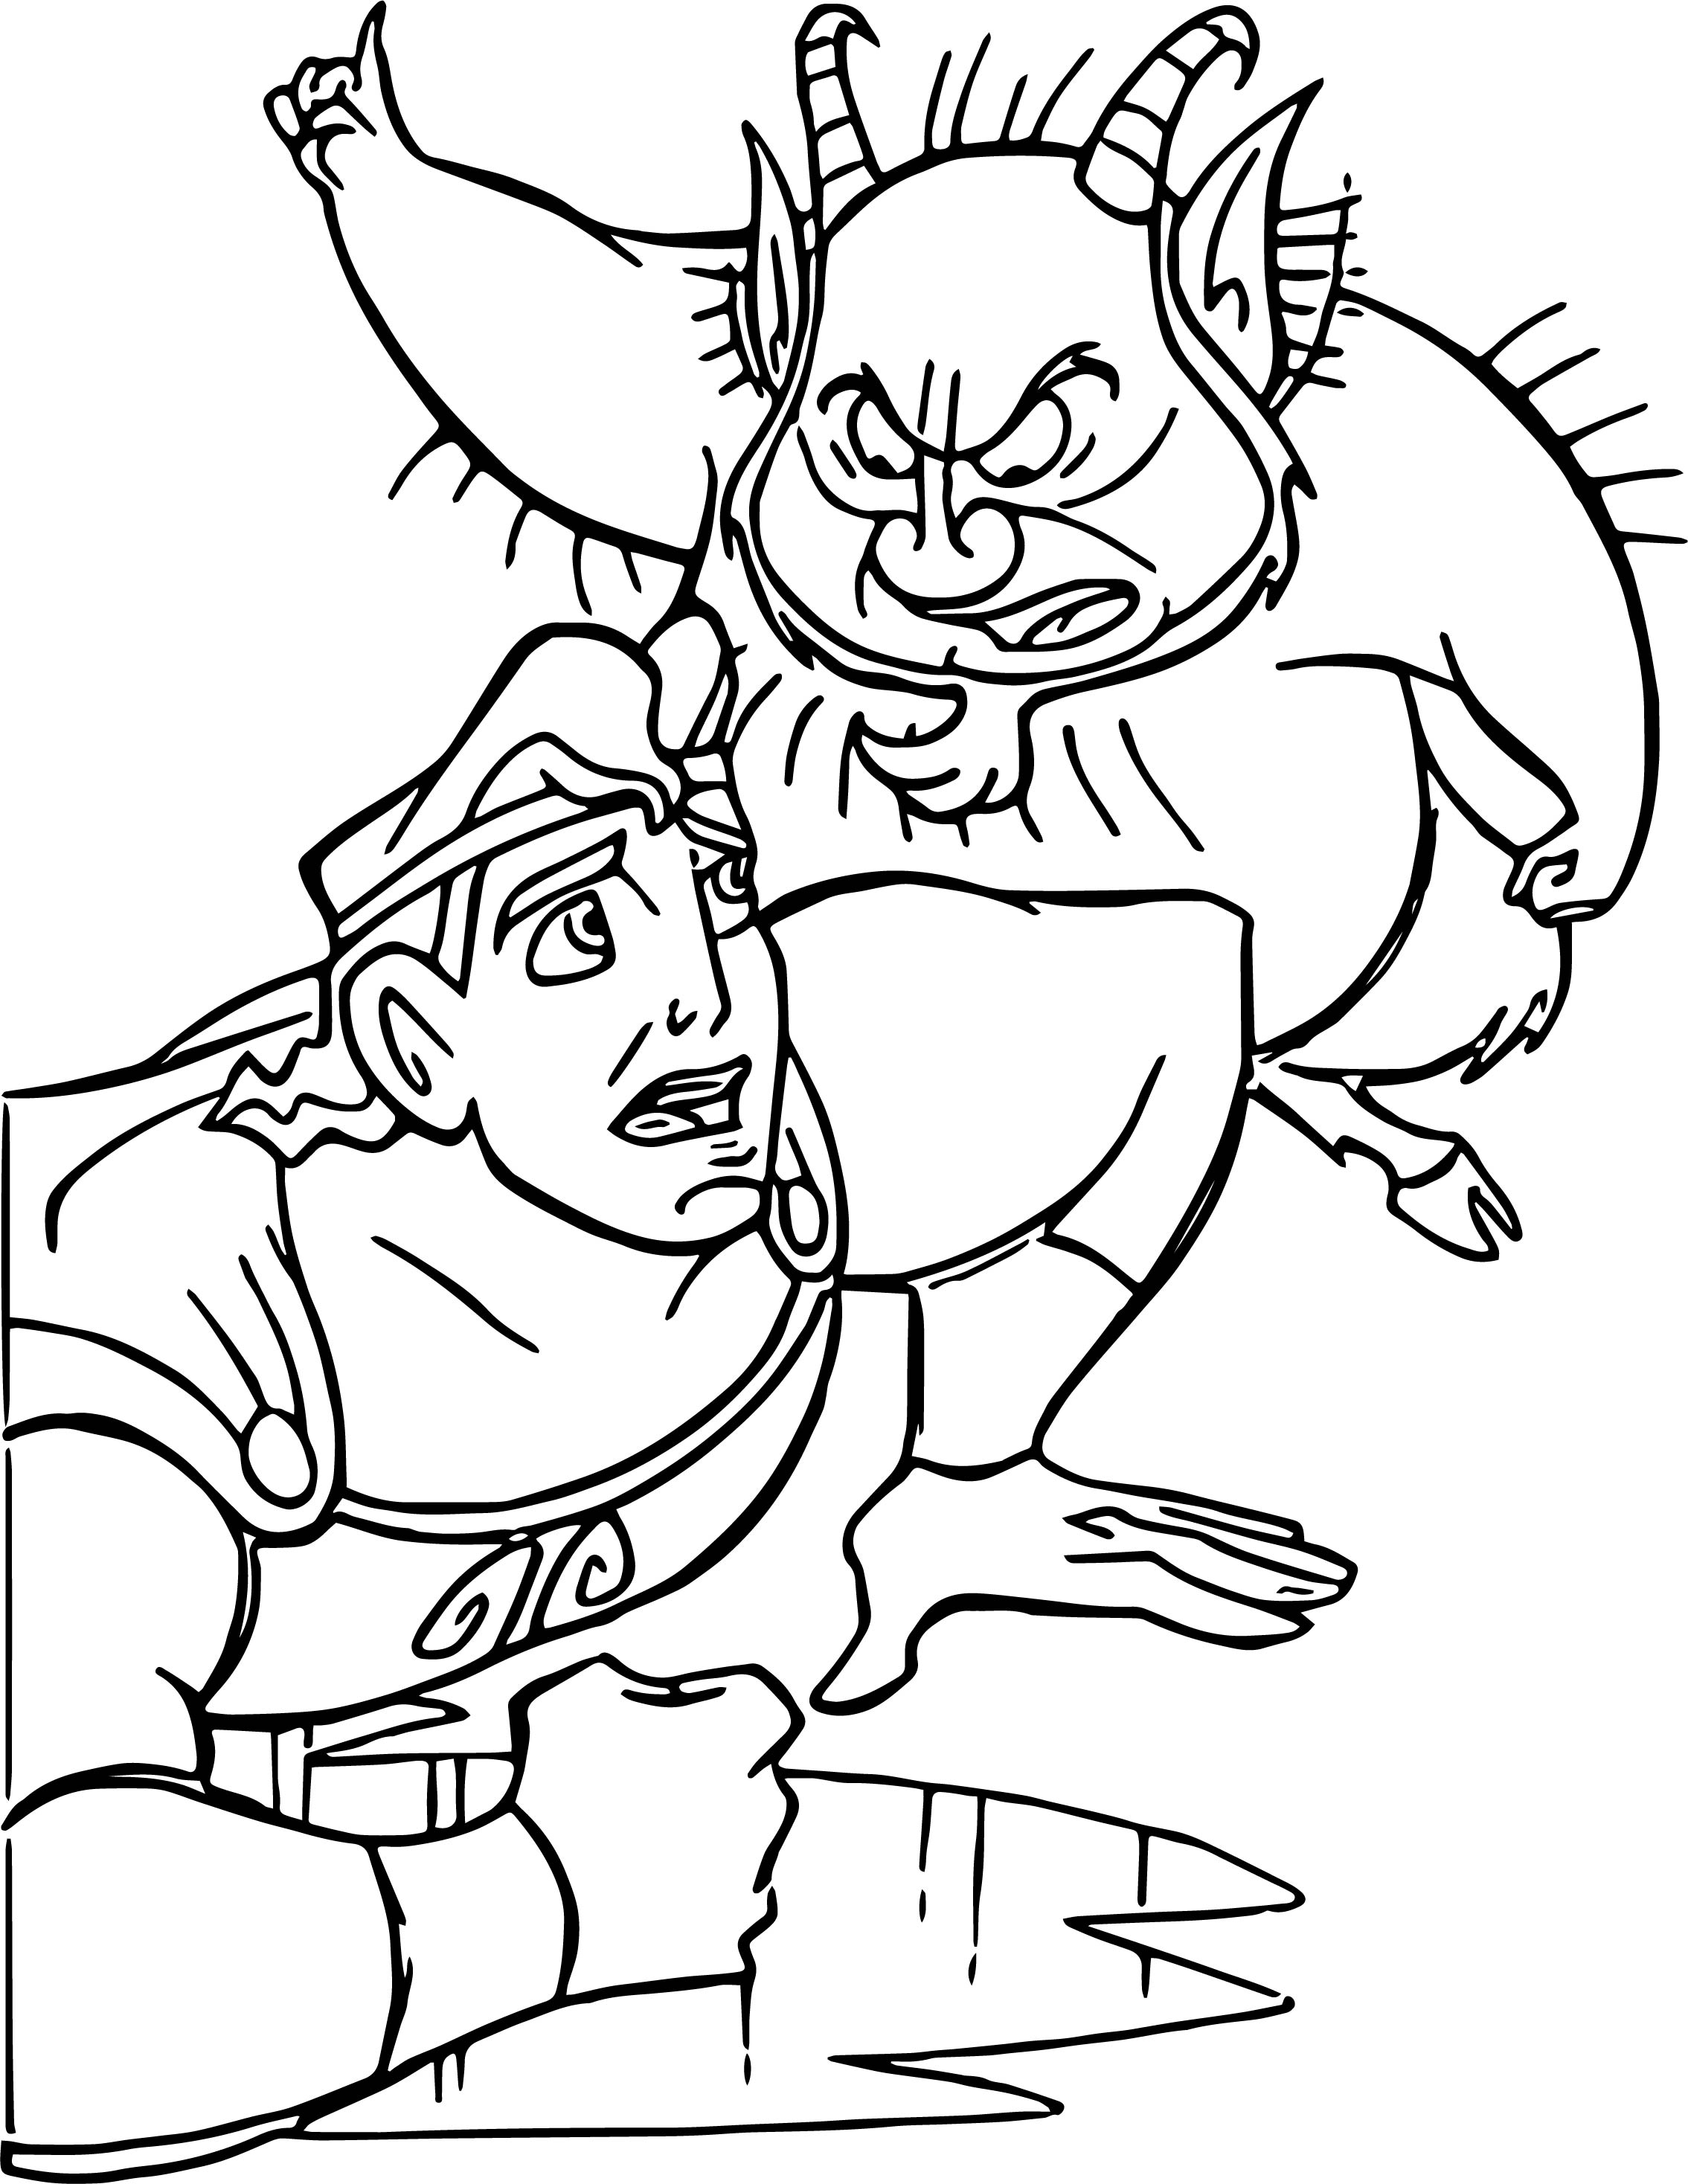 Training Hercules 2 Coloring Pages